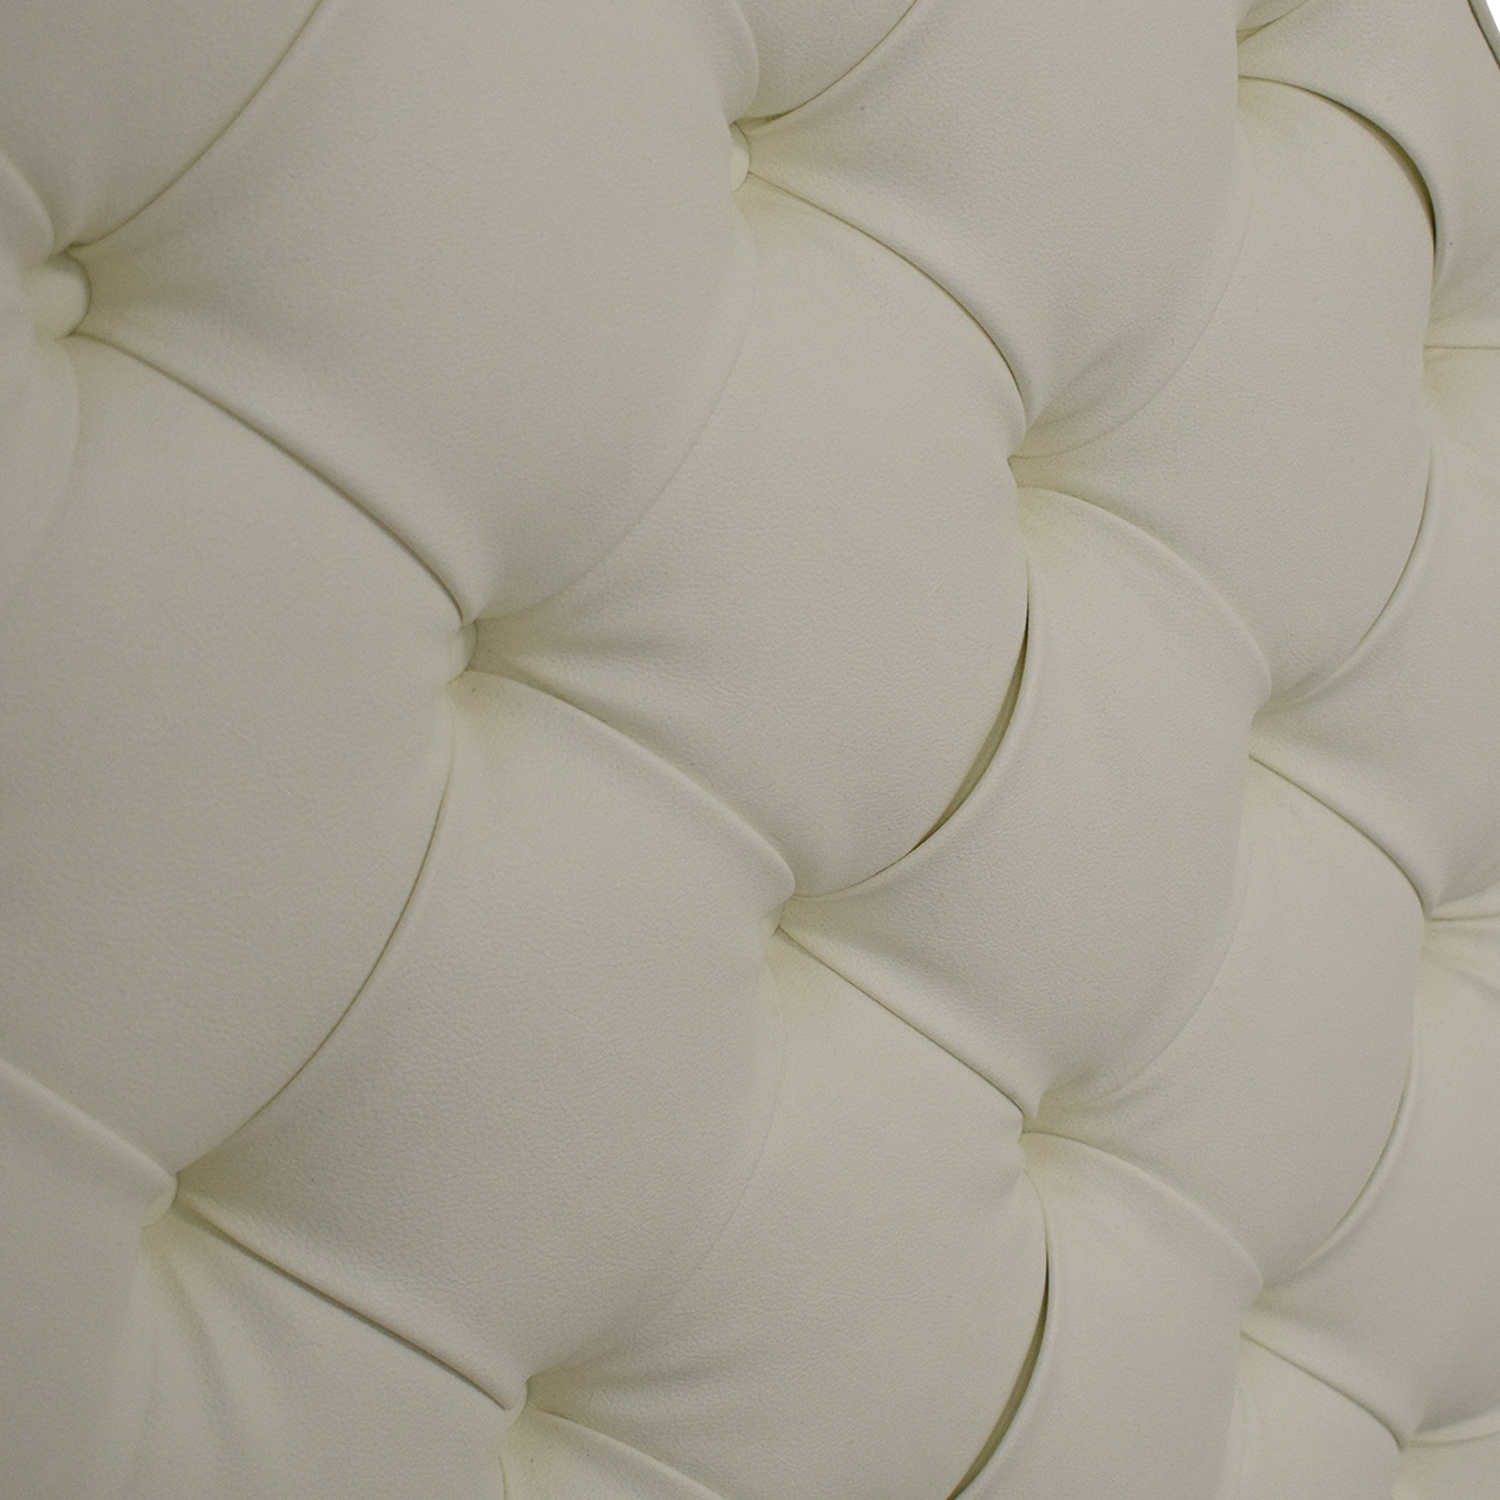 Calico Calico Queen Tufted Headboard Headboards